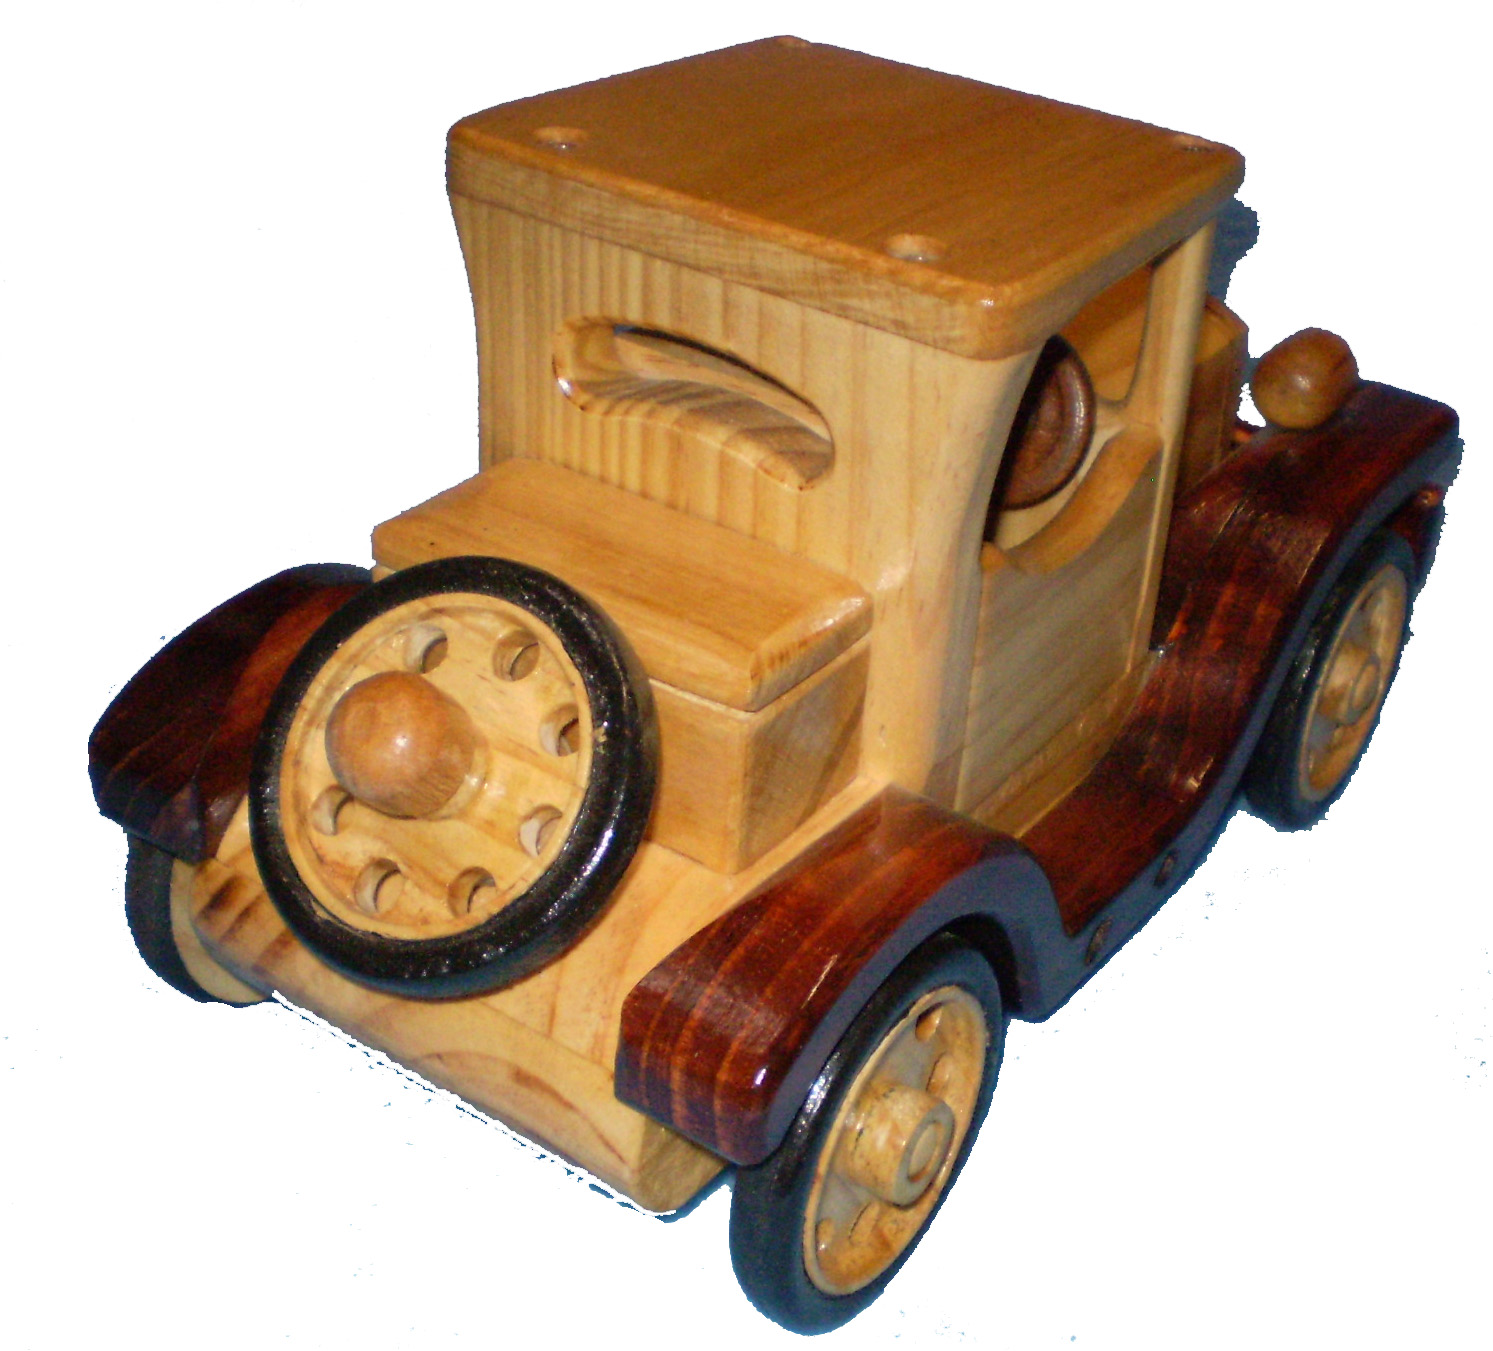 Ford Model T coupe wooden toys